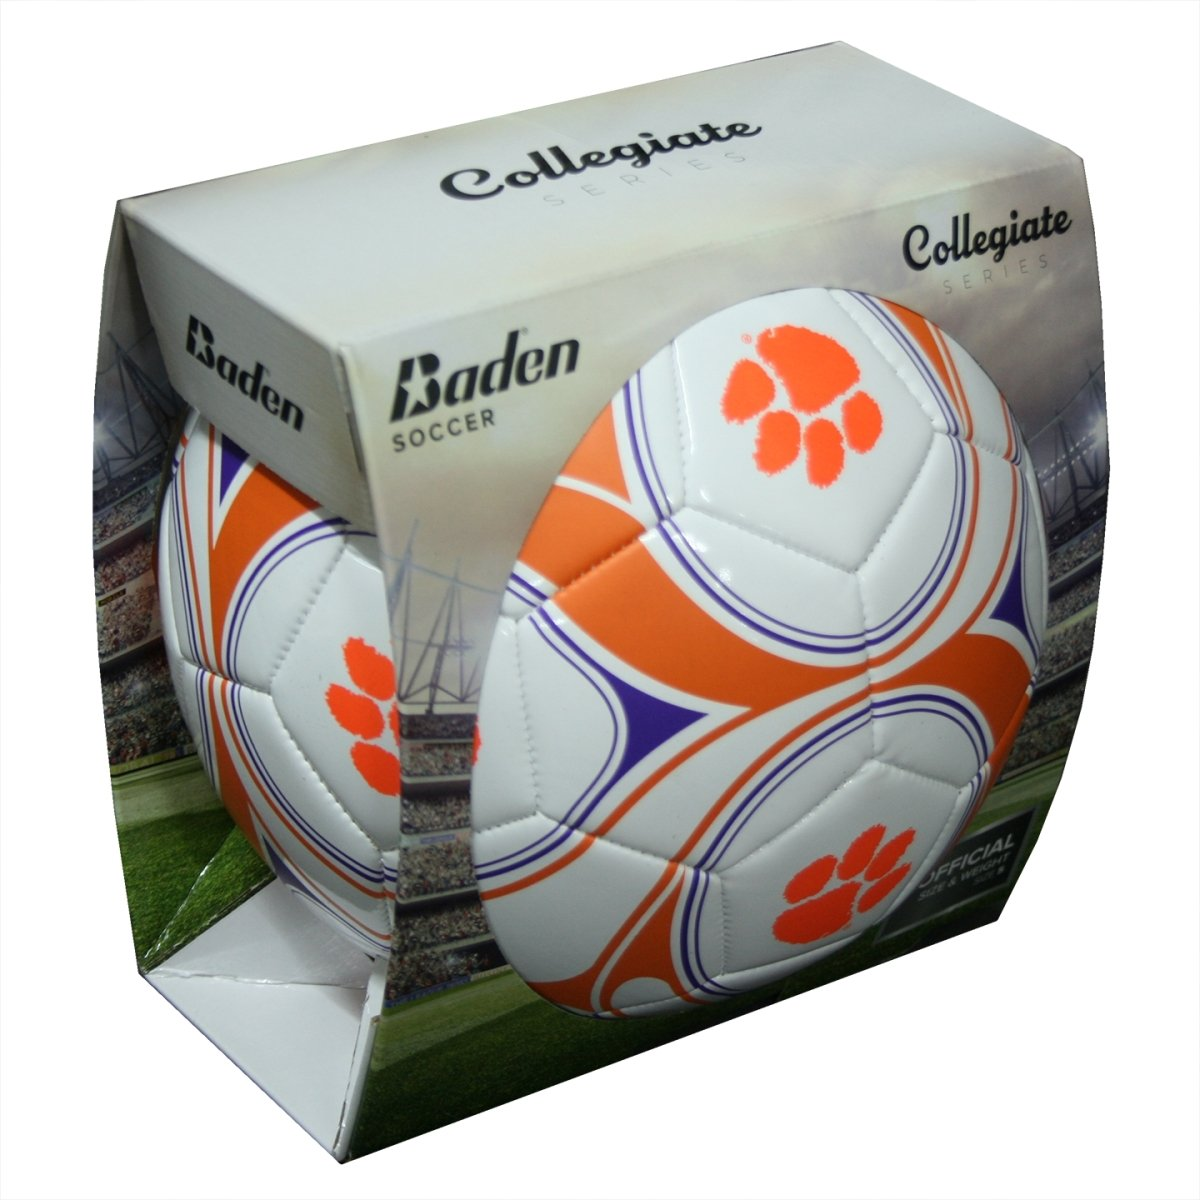 Baden Soccer Ball With Orange Print - Mr. Knickerbocker